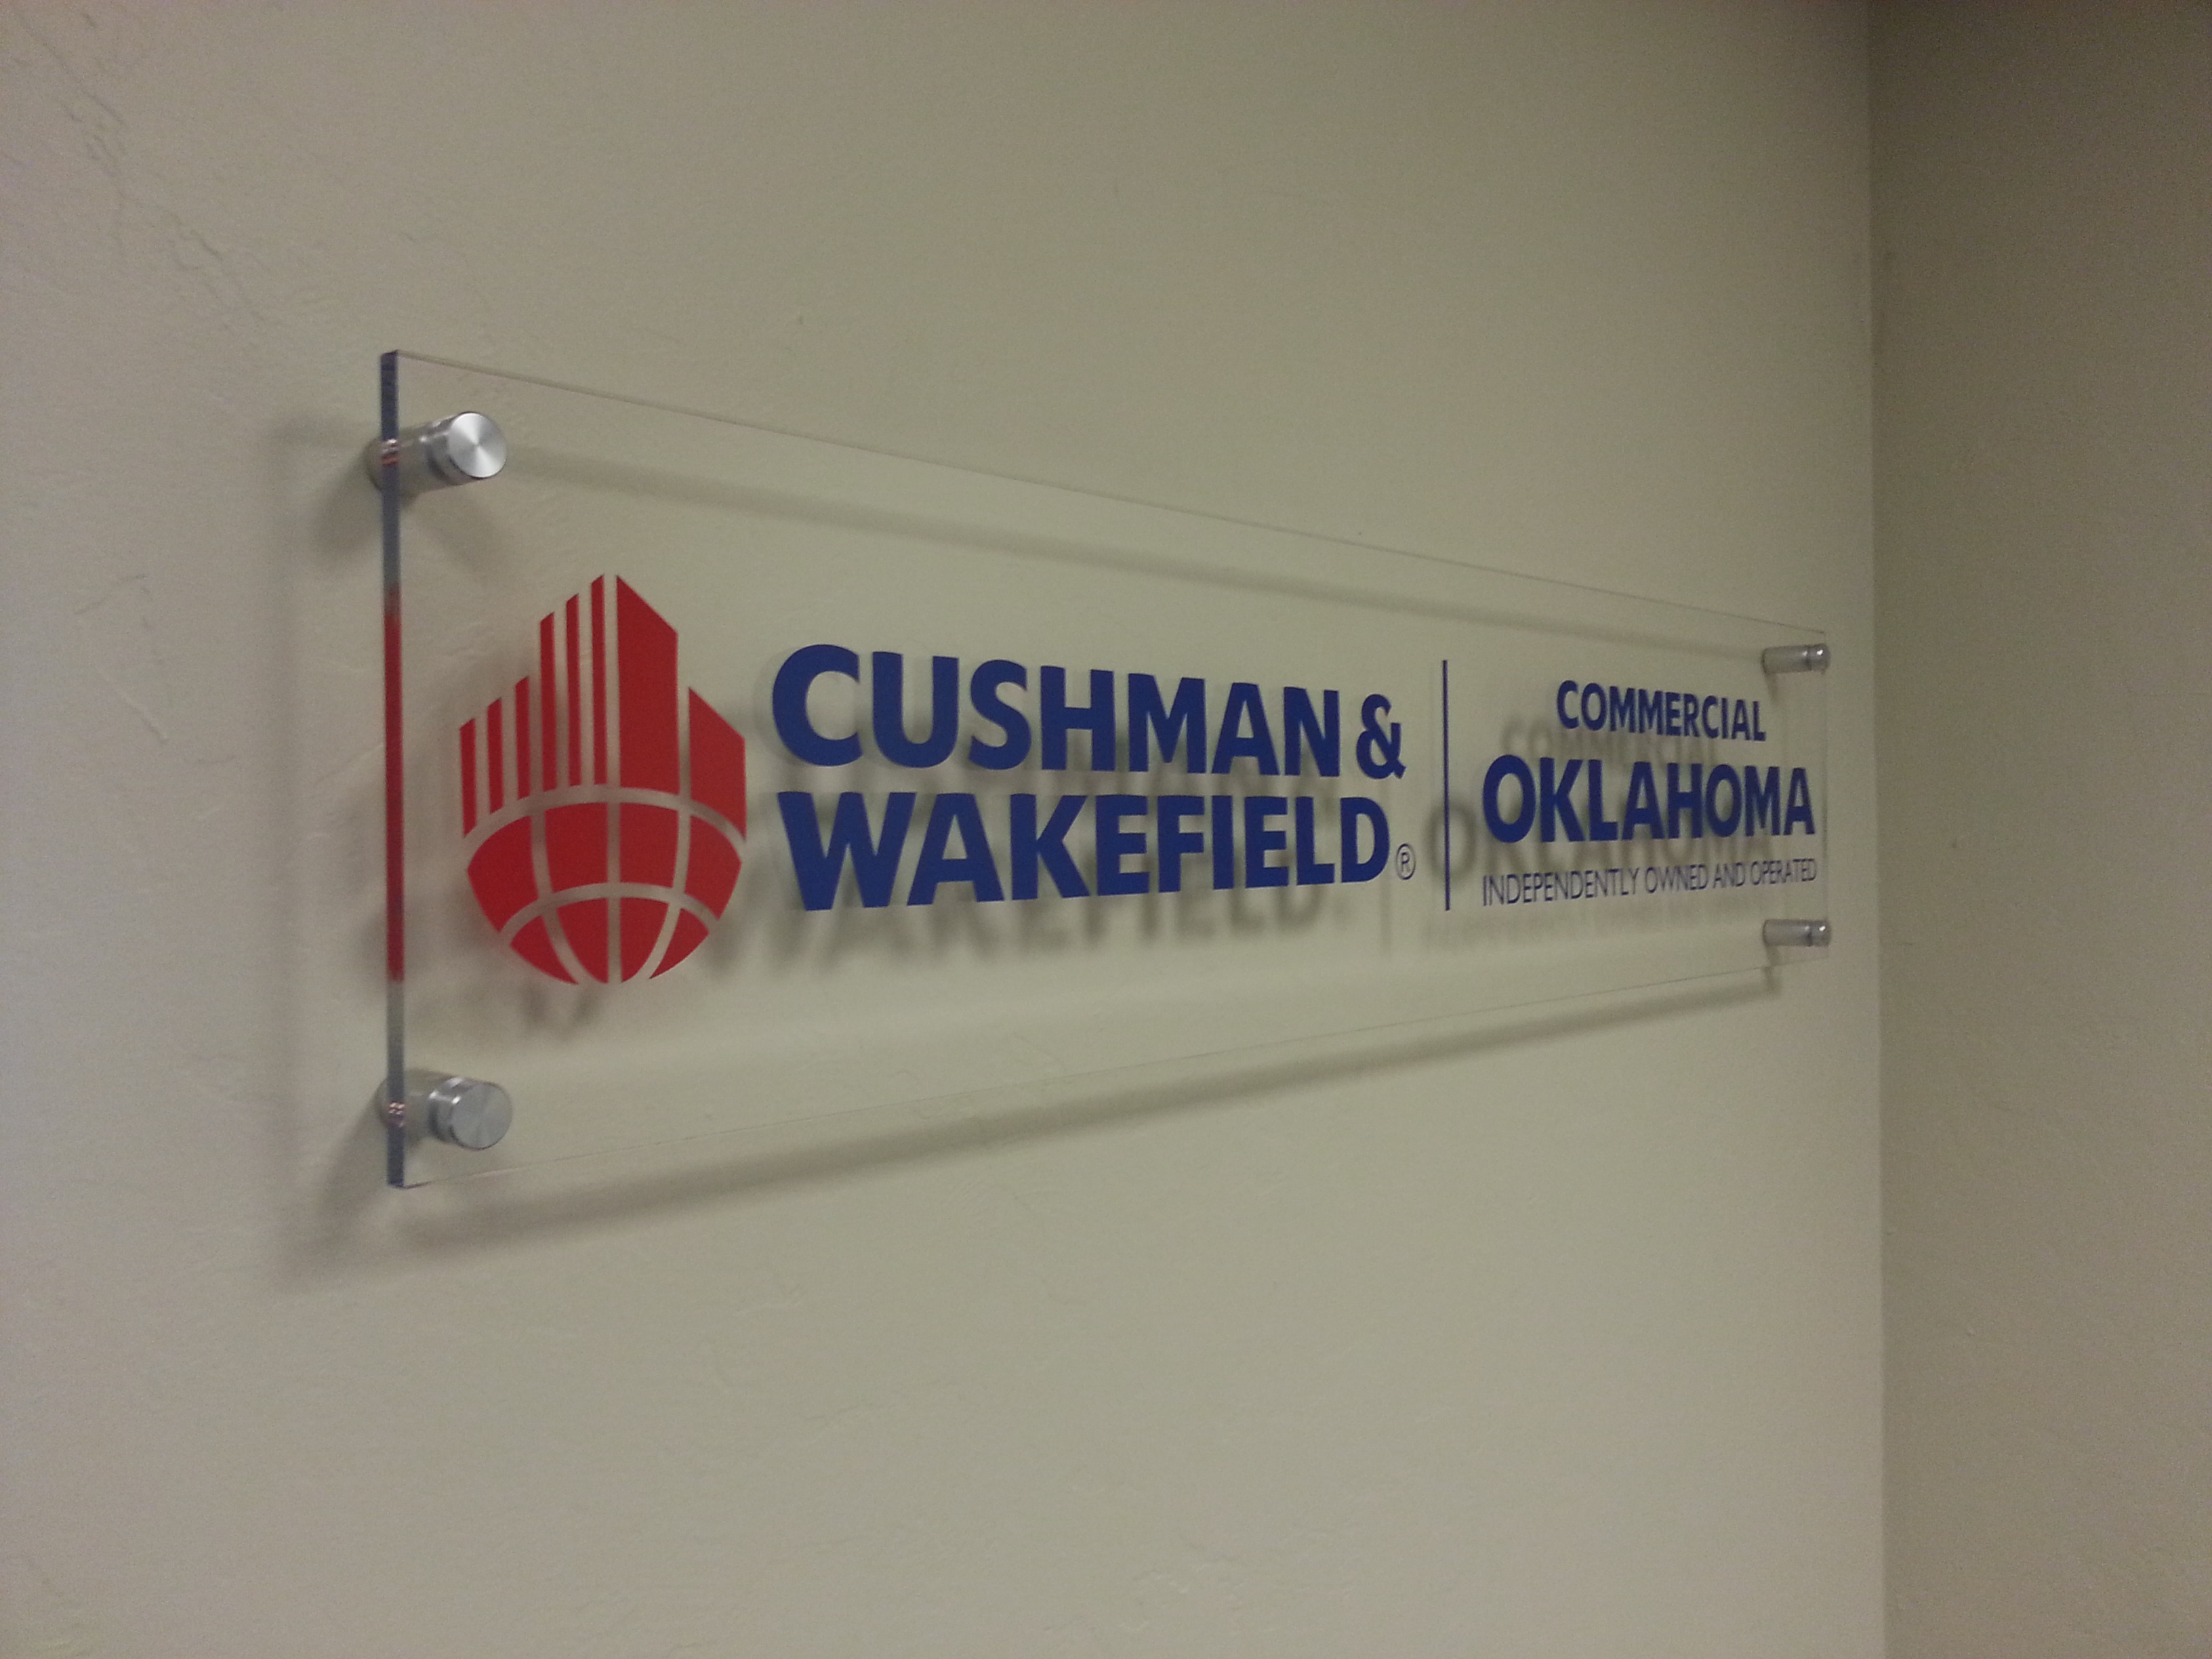 Commercial oklahoma lobby sign photo